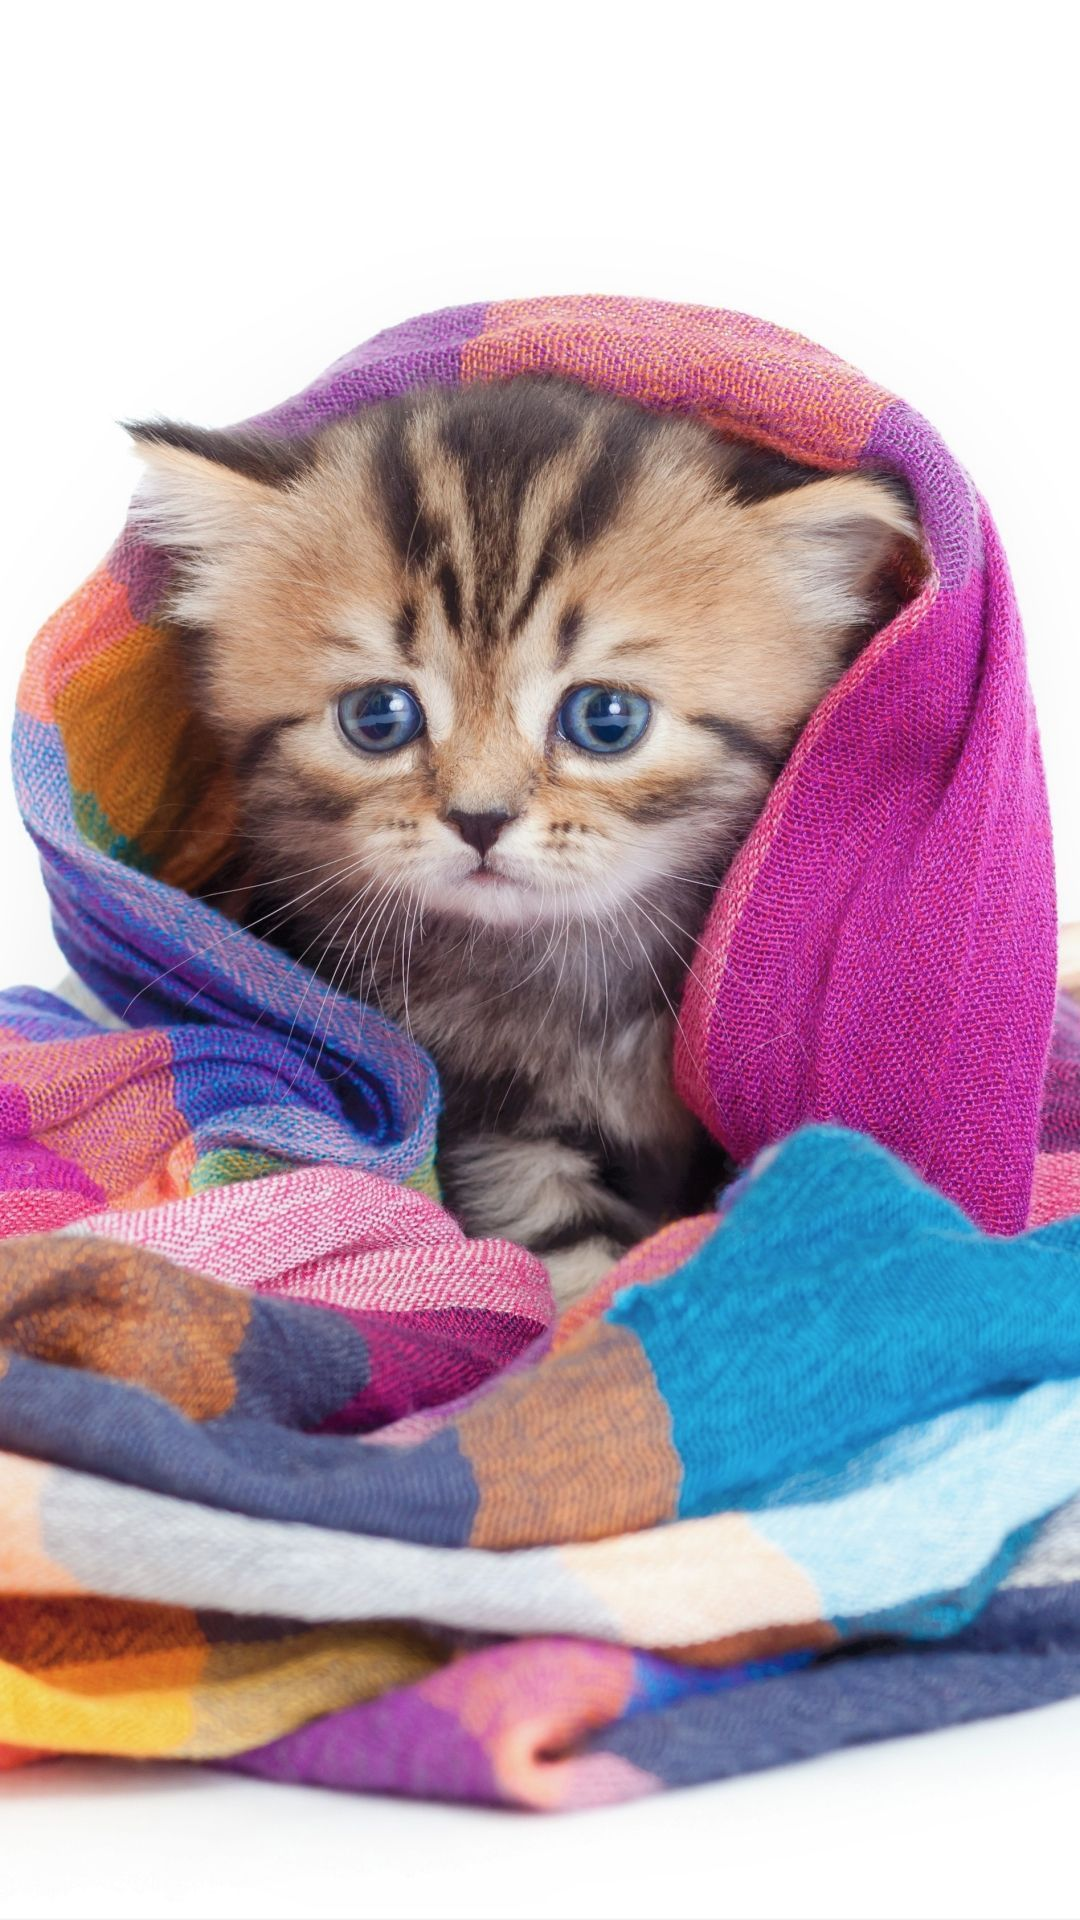 Kitten Cat Wallpaper Android Cats And Kittens Cute Animals Cats